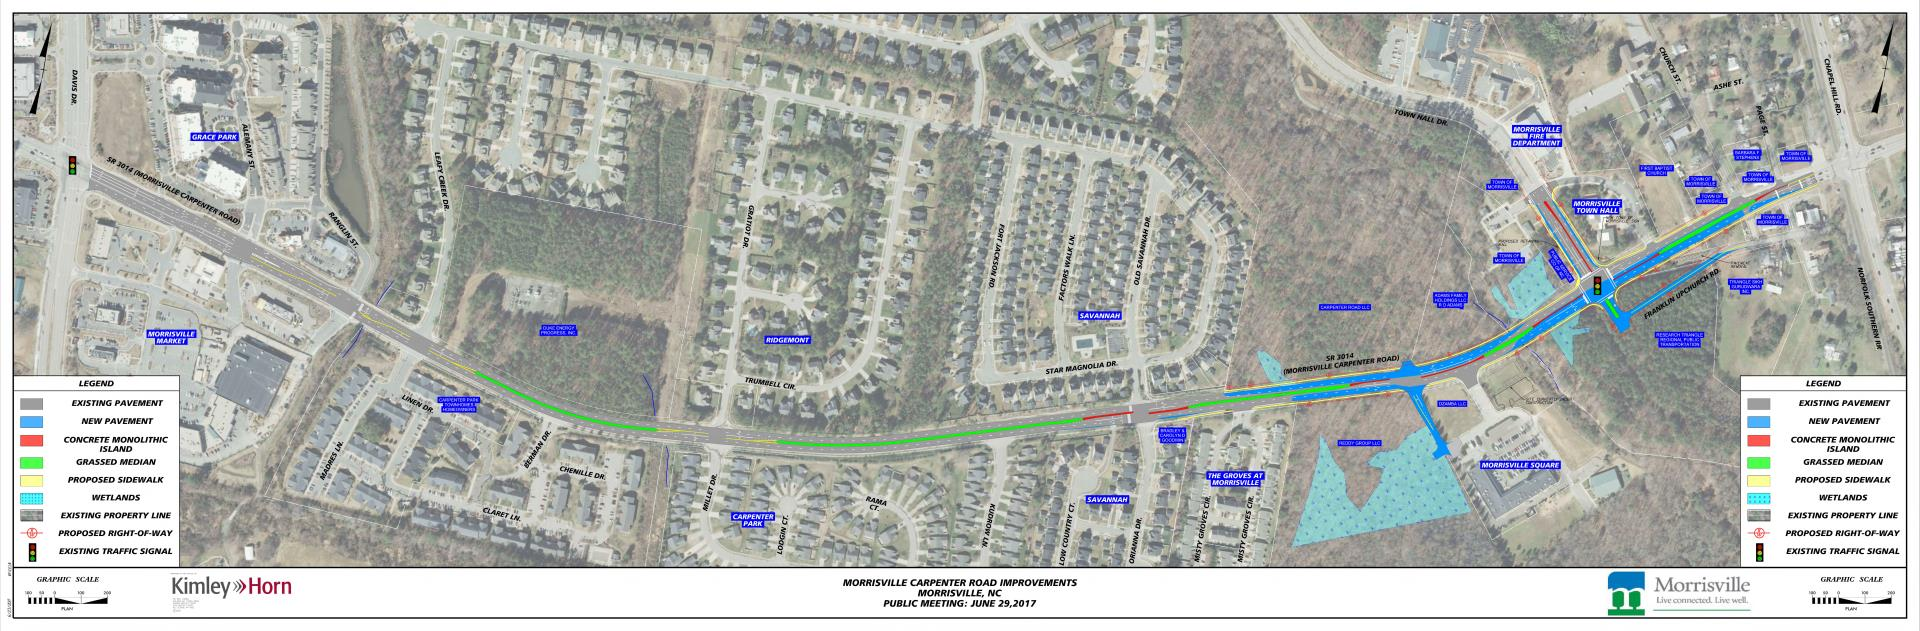 Morrisville Carpenter Public Mtg Map